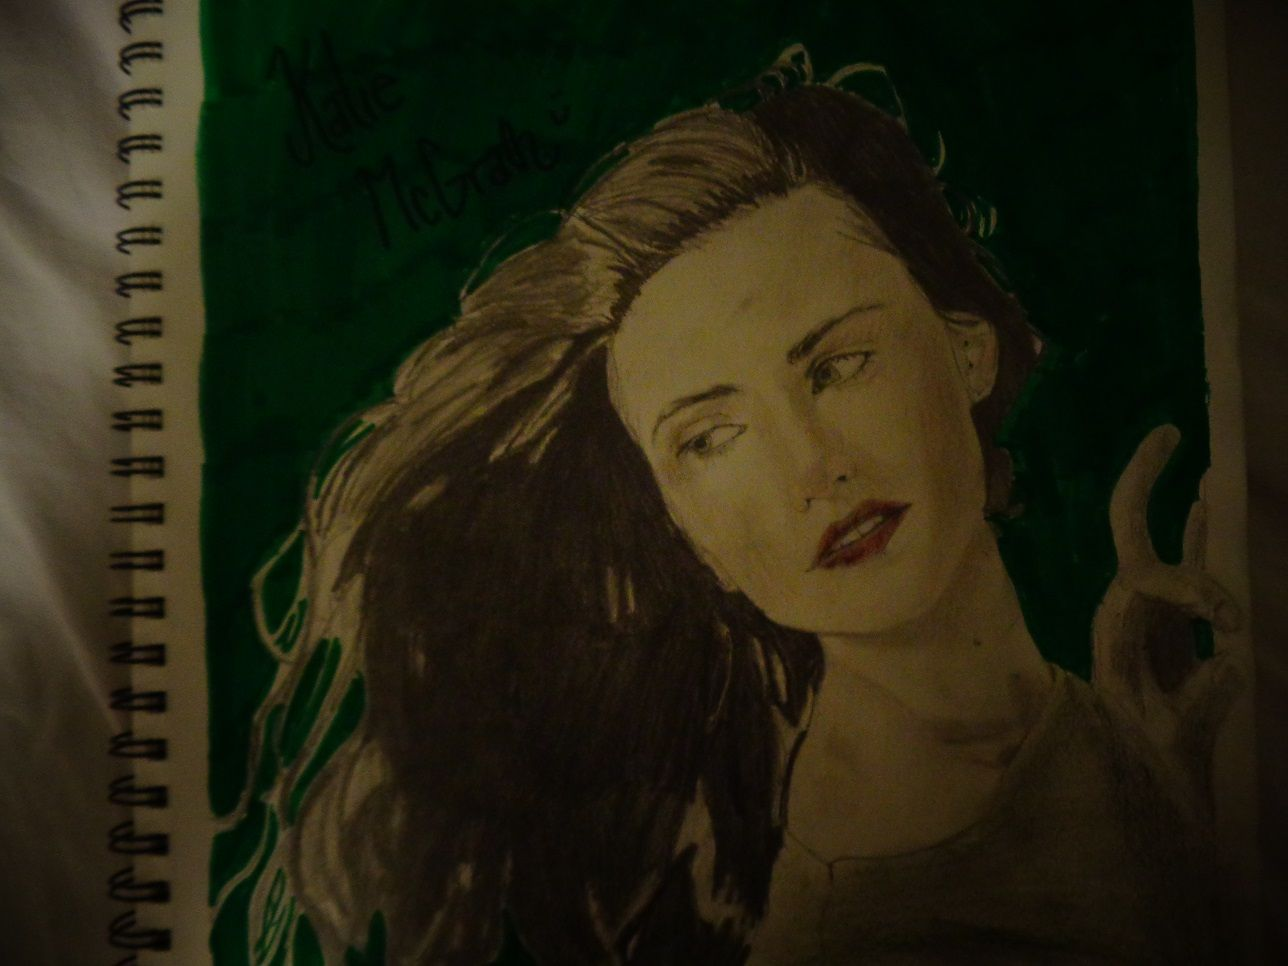 This is a drawing of Katie McGrath that I, @HannahJackfield did! I think it turned out somewhat good